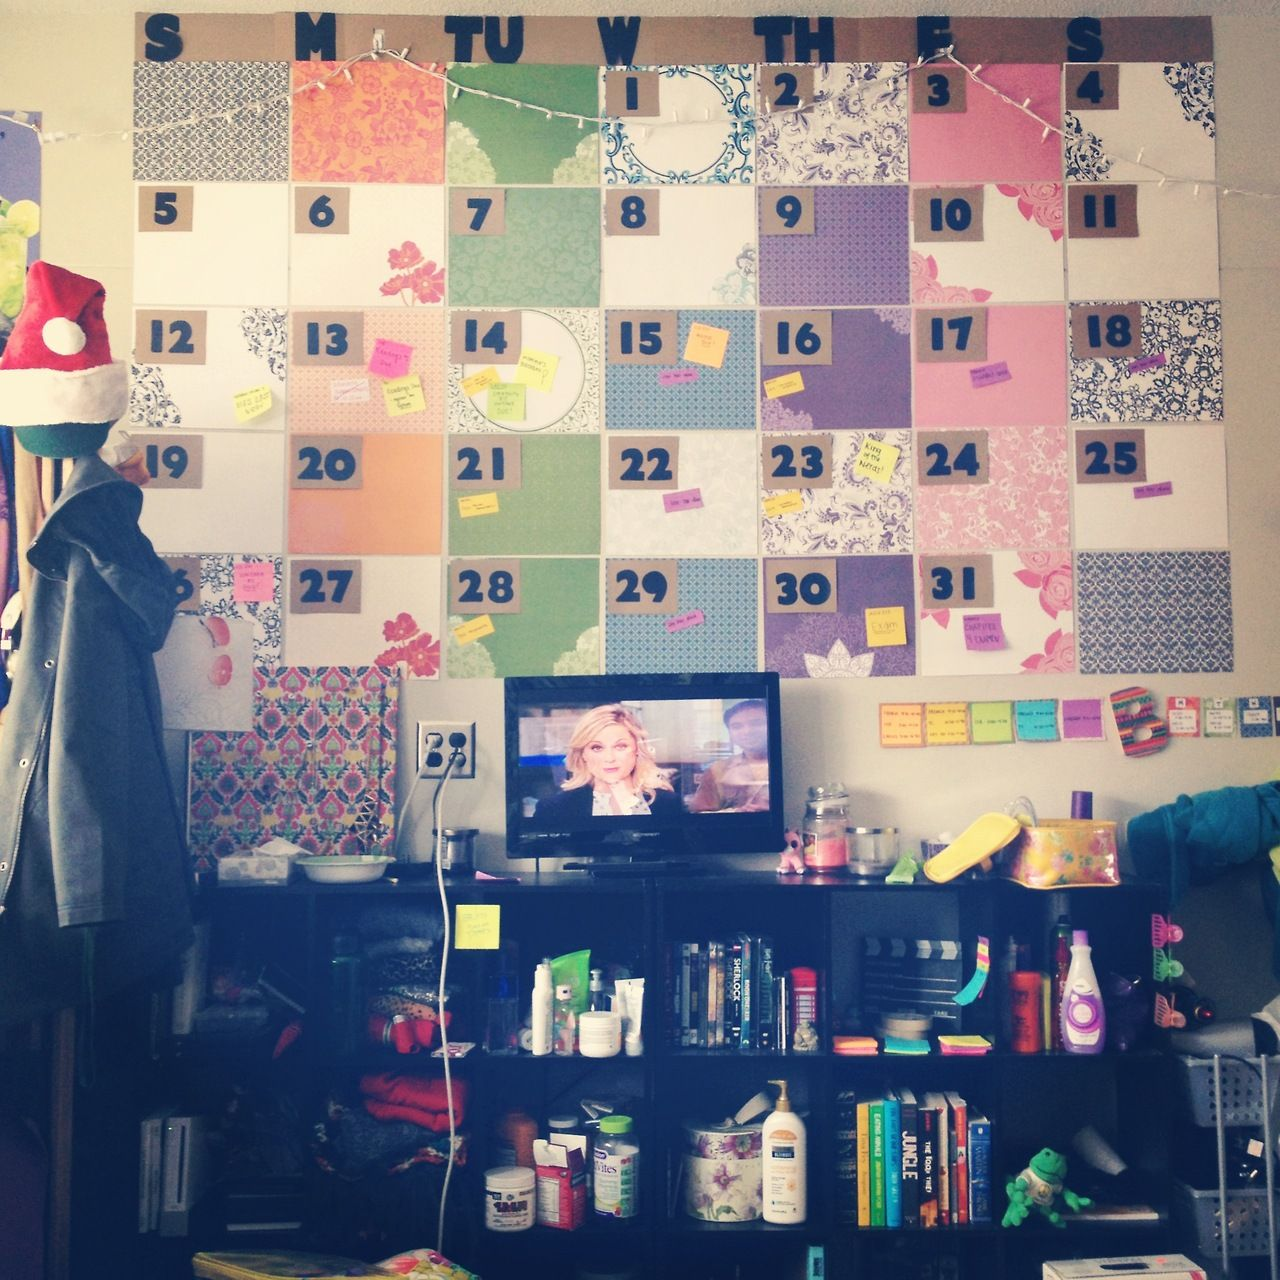 Dorm Room Wall Calendar! A Super easy and creative way to make your ...